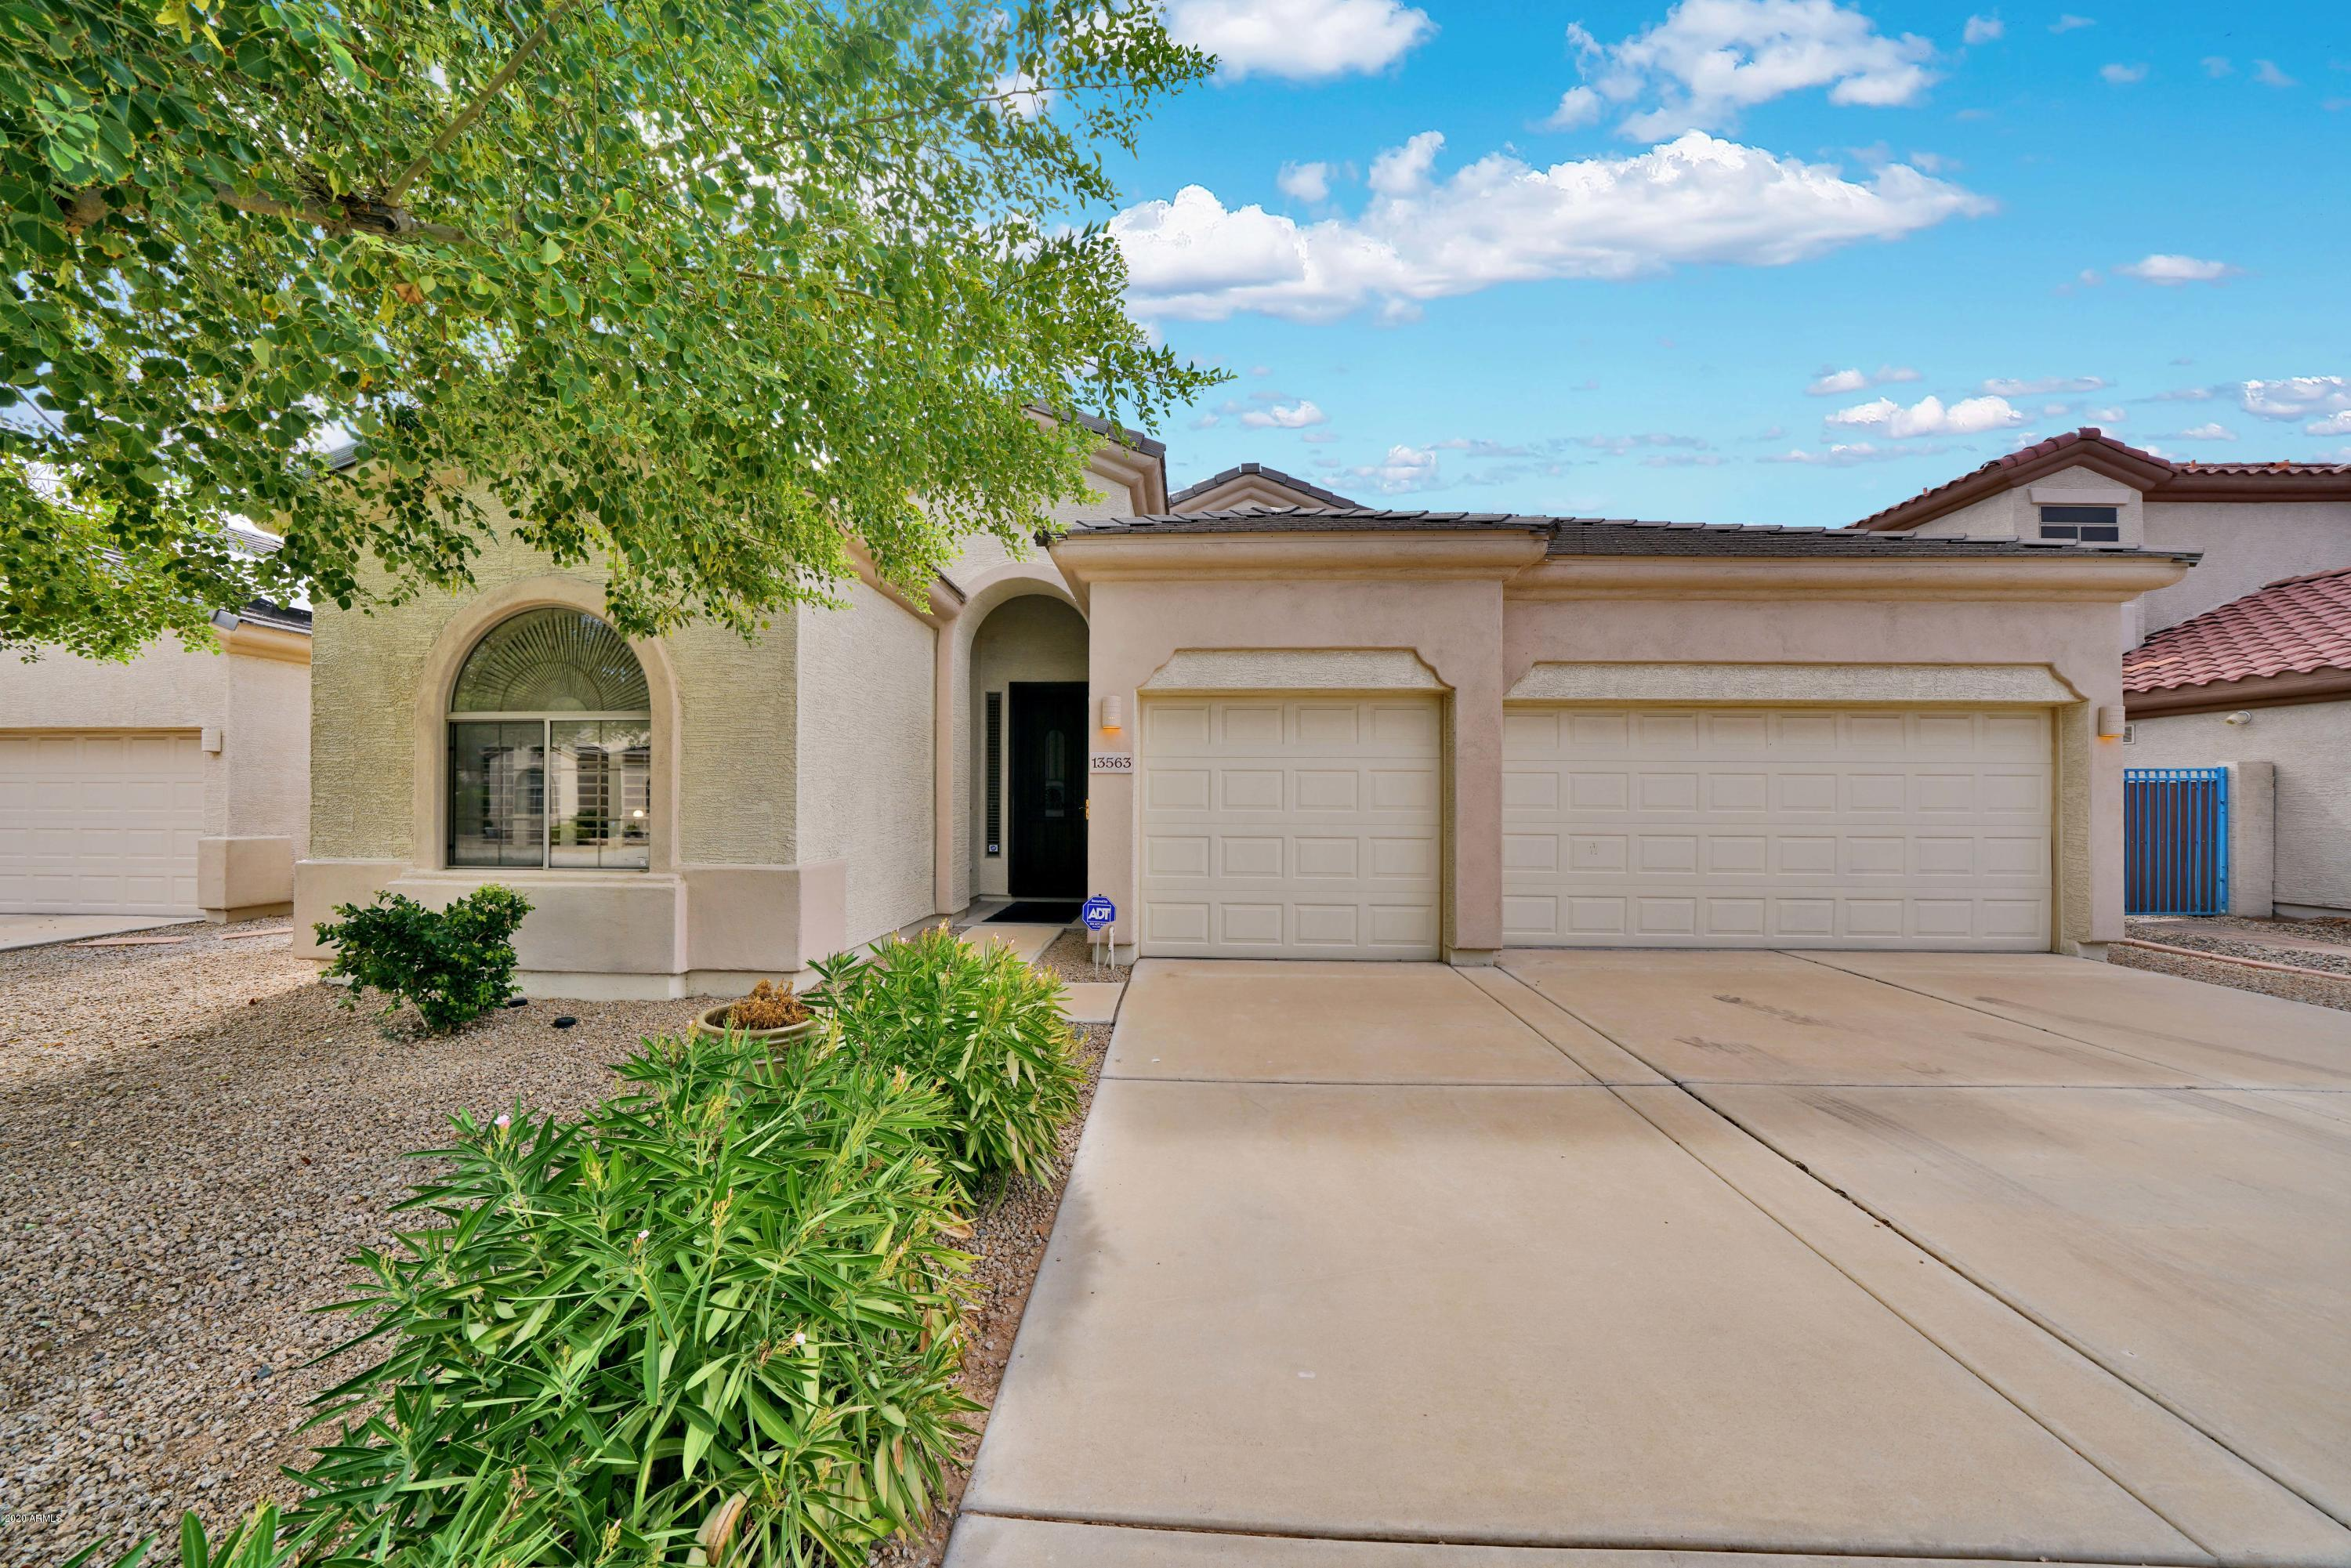 13563 W MONTE VISTA Road, Goodyear, AZ 85395, 3 Bedrooms Bedrooms, ,Residential Lease,For Rent,13563 W MONTE VISTA Road,6118112